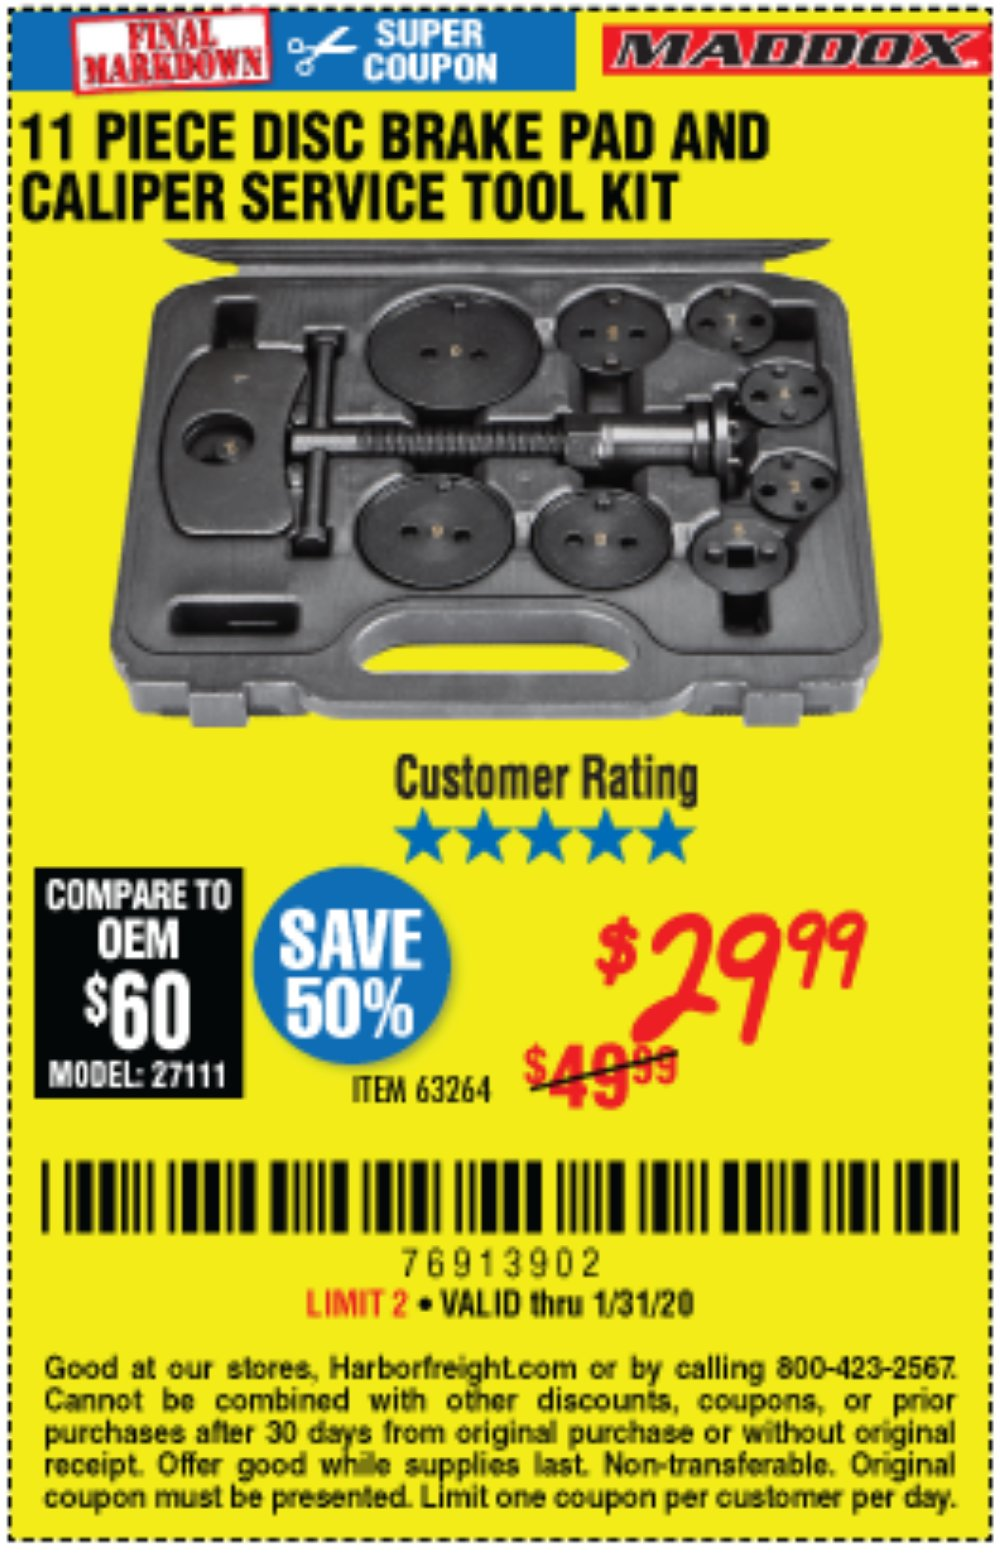 Harbor Freight Coupon, HF Coupons - 11 Piece Disc Brake Pad And Caliper Service Tool Kit